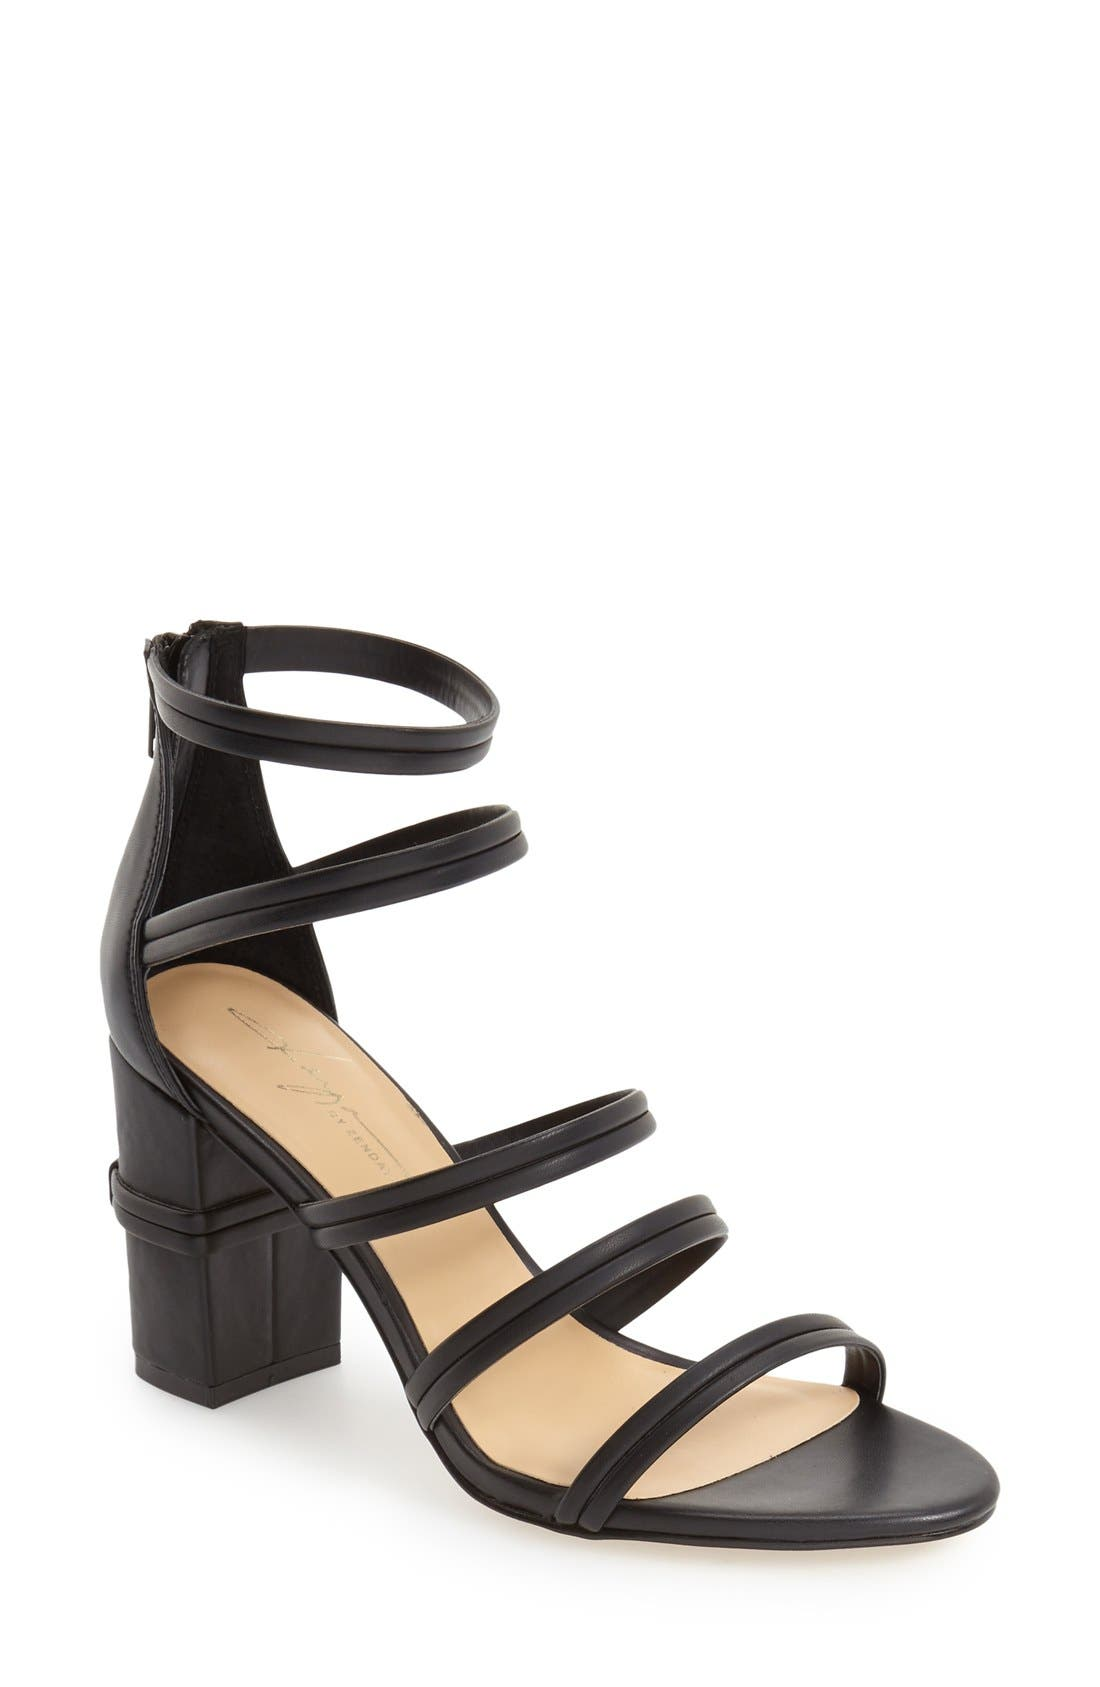 DAYA, by Zendaya 'Amiee' Strappy Sandal, Main thumbnail 1, color, 001